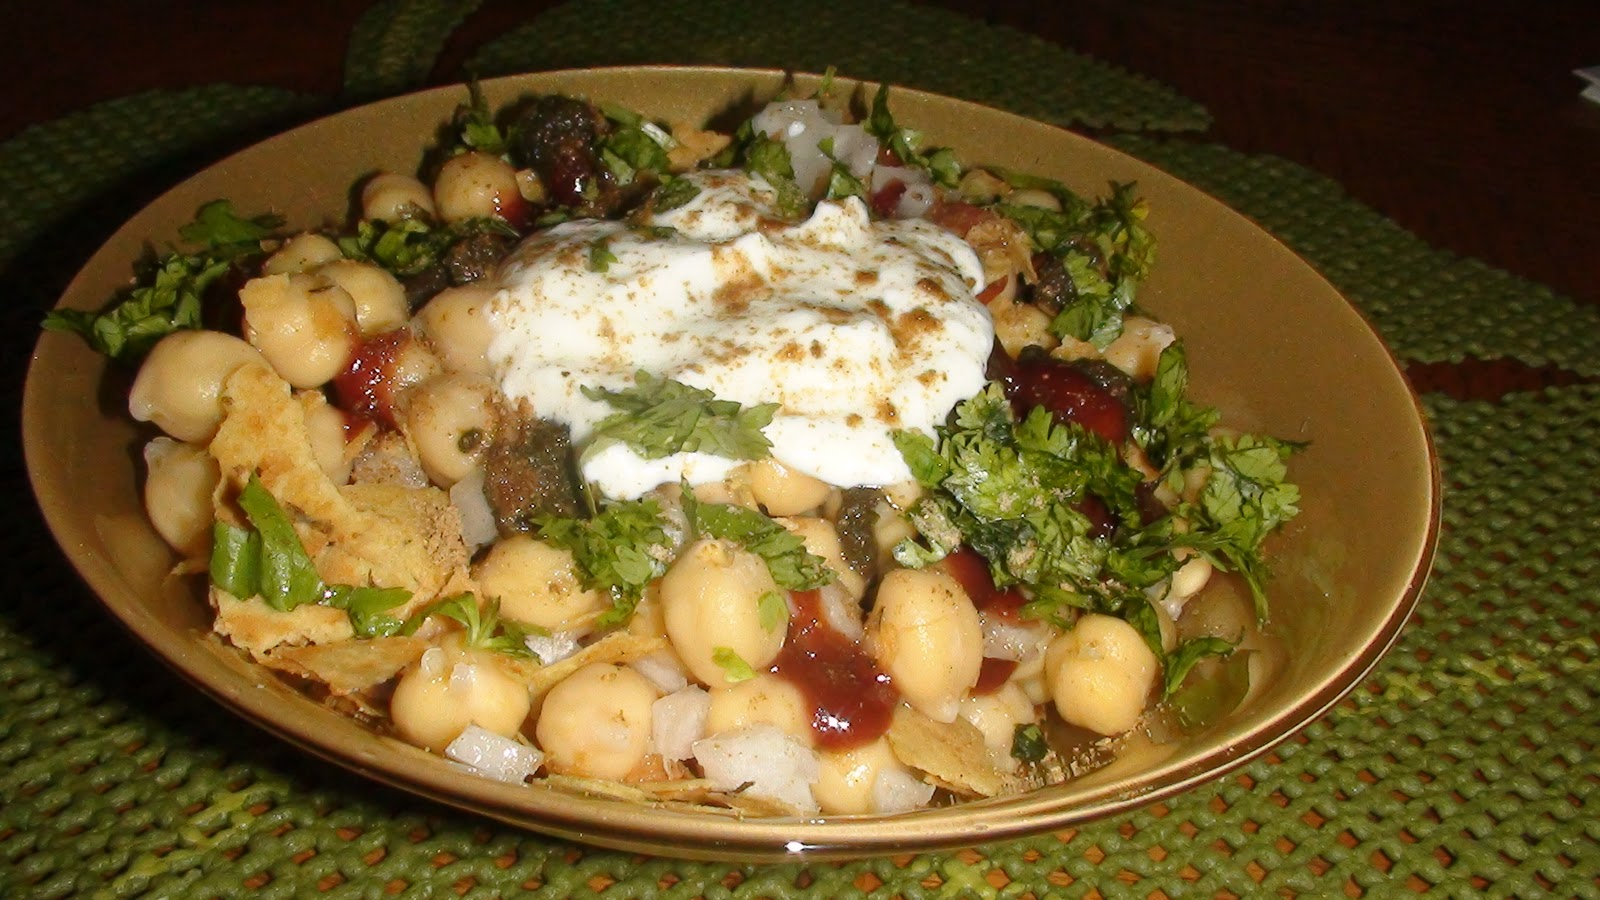 ... the chaat masala cumin pwd and chopped cilantro enjoy immediately